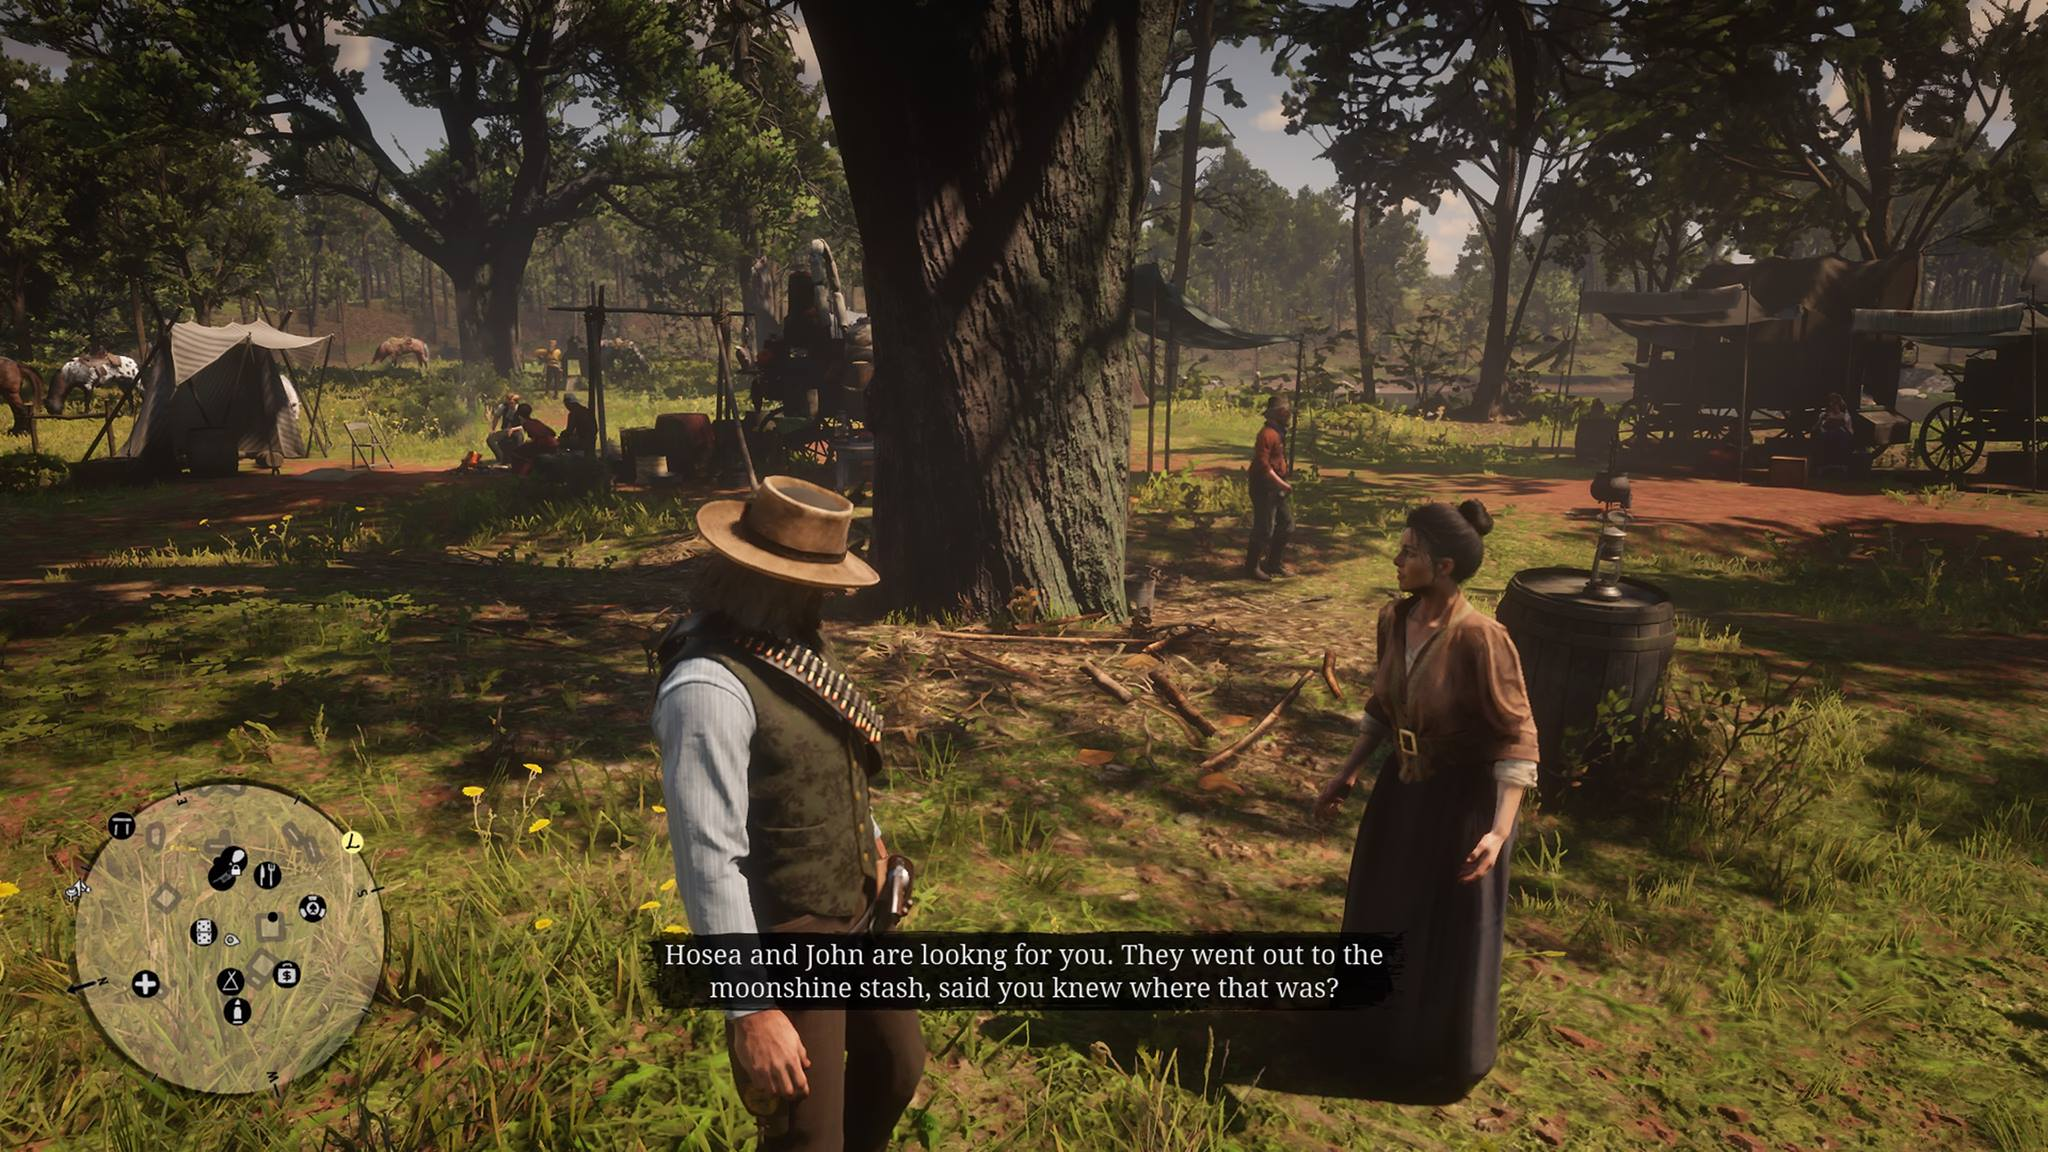 Advertising the New American Art | Red Dead Redemption 2 Walkthrough |  PrimeWikis